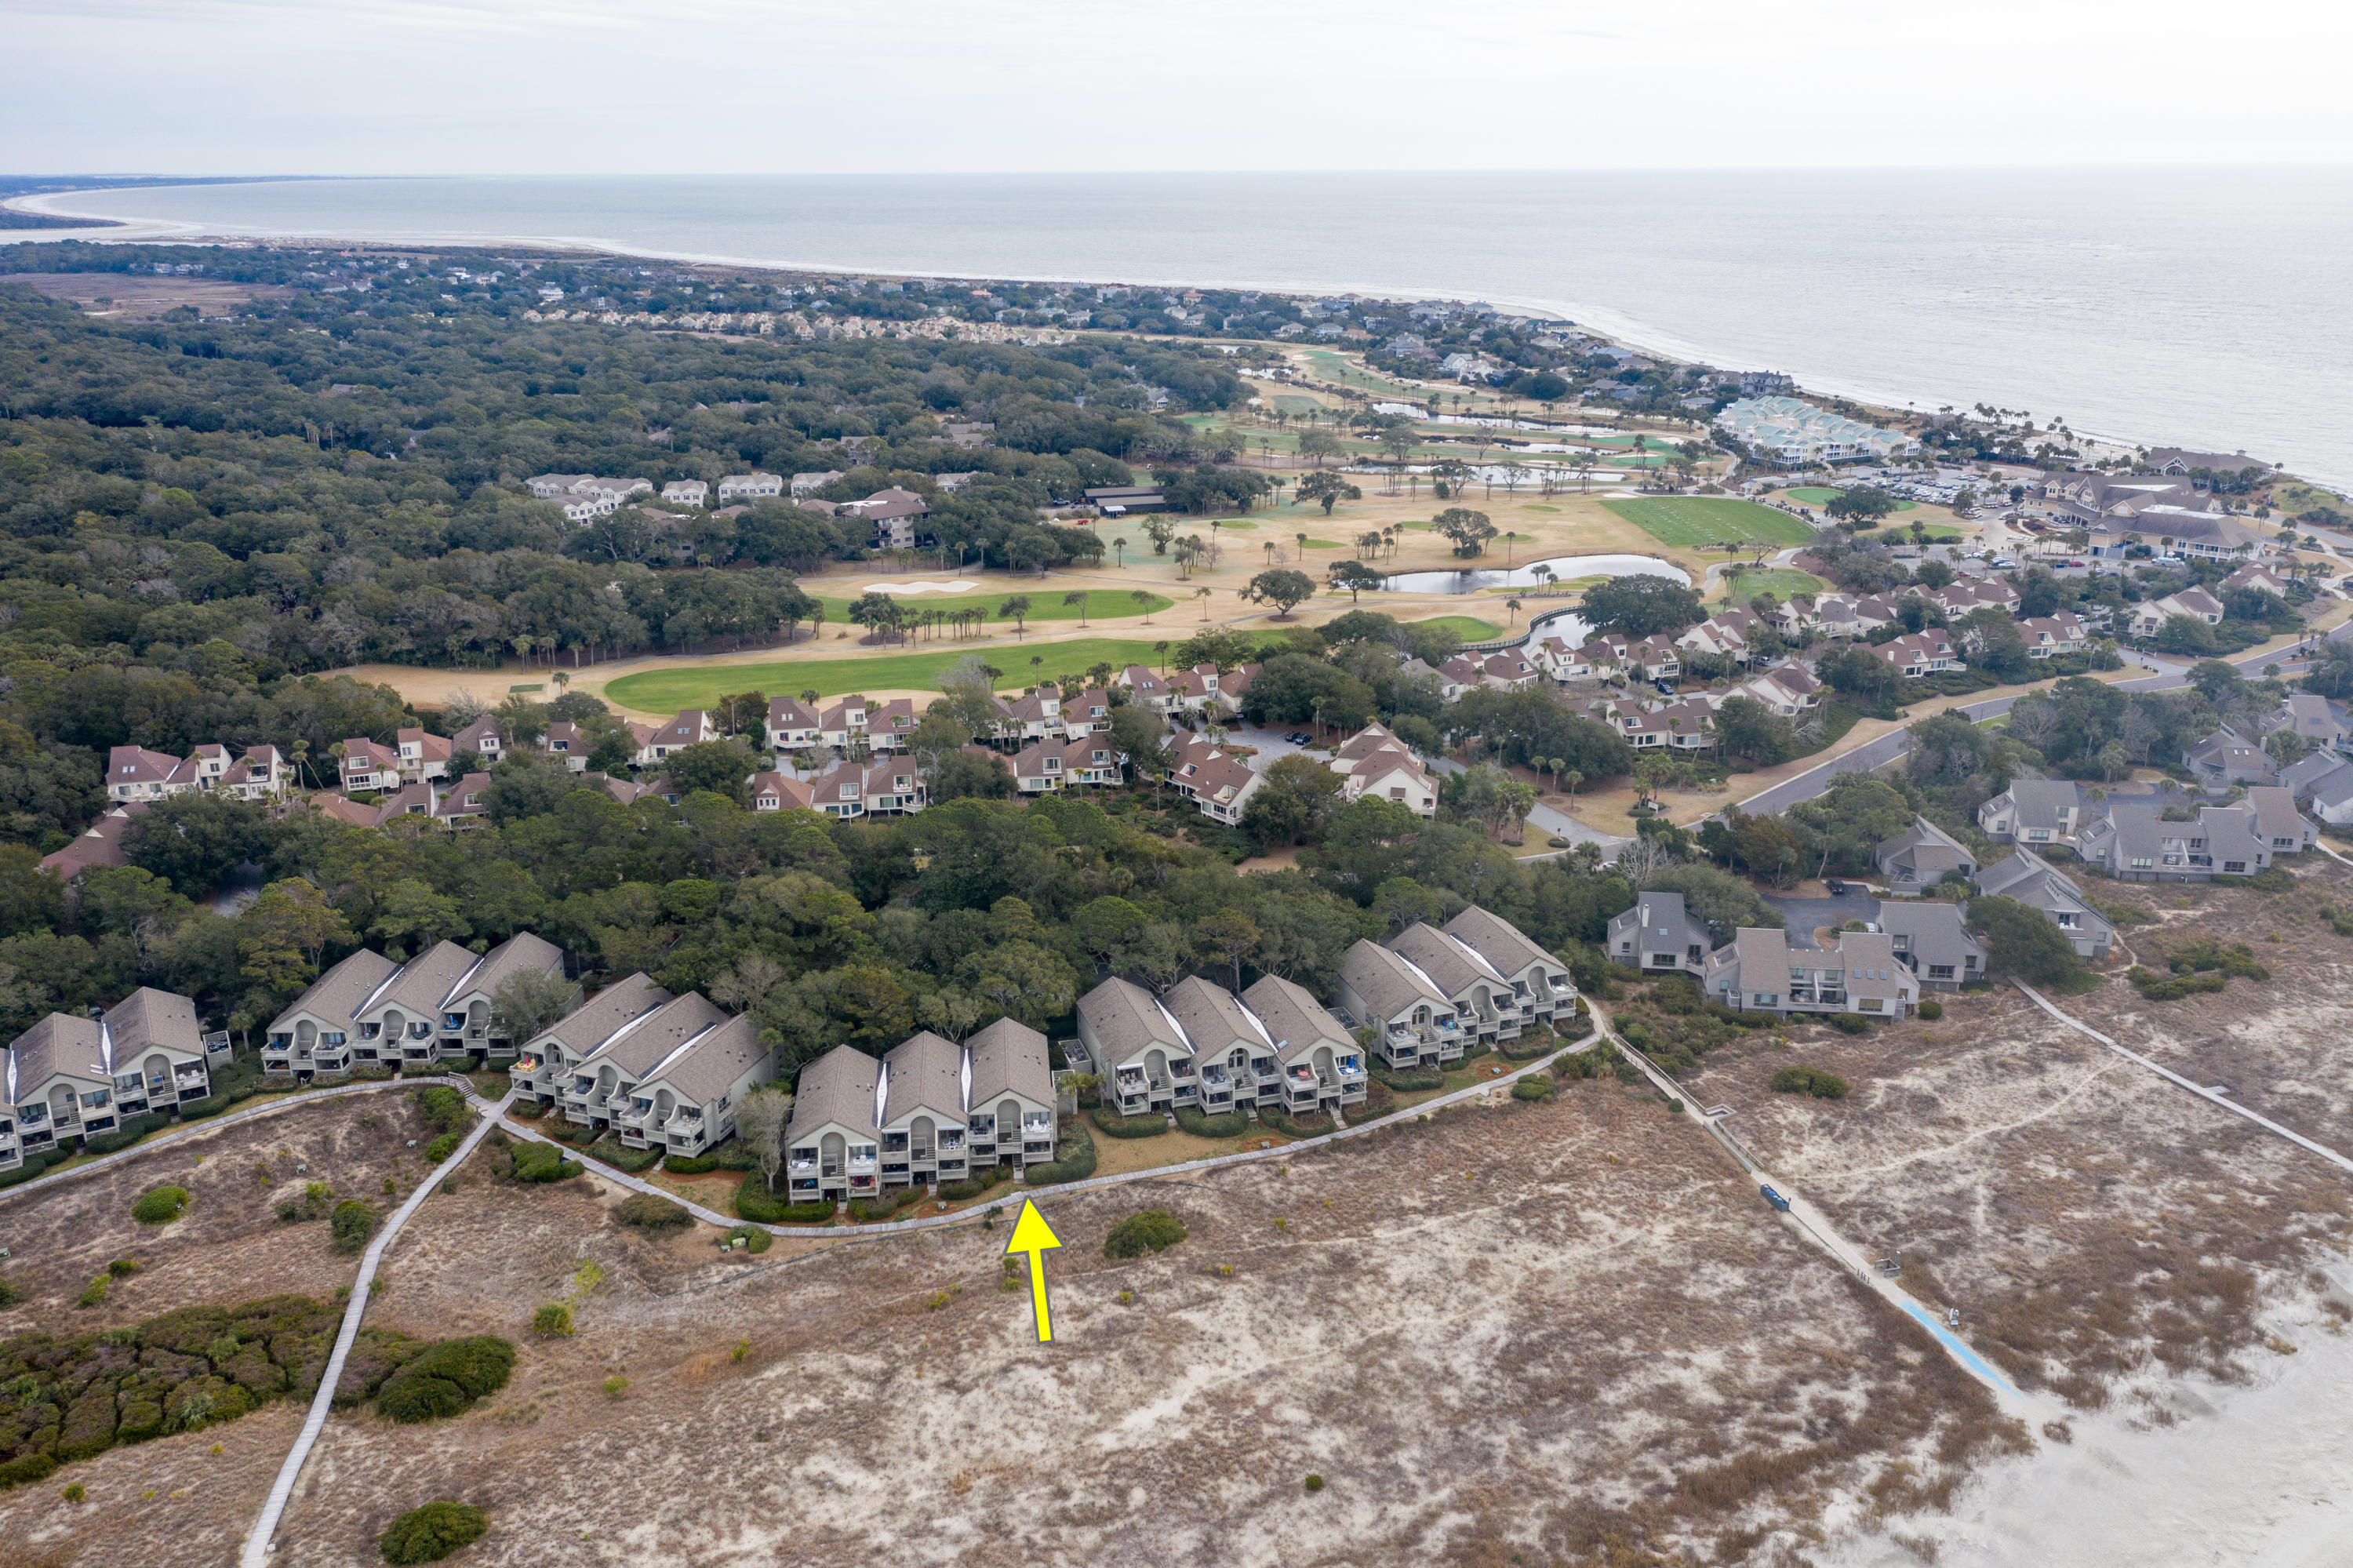 Seabrook Island Homes For Sale - 1329 Pelican Watch Villas, Seabrook Island, SC - 15